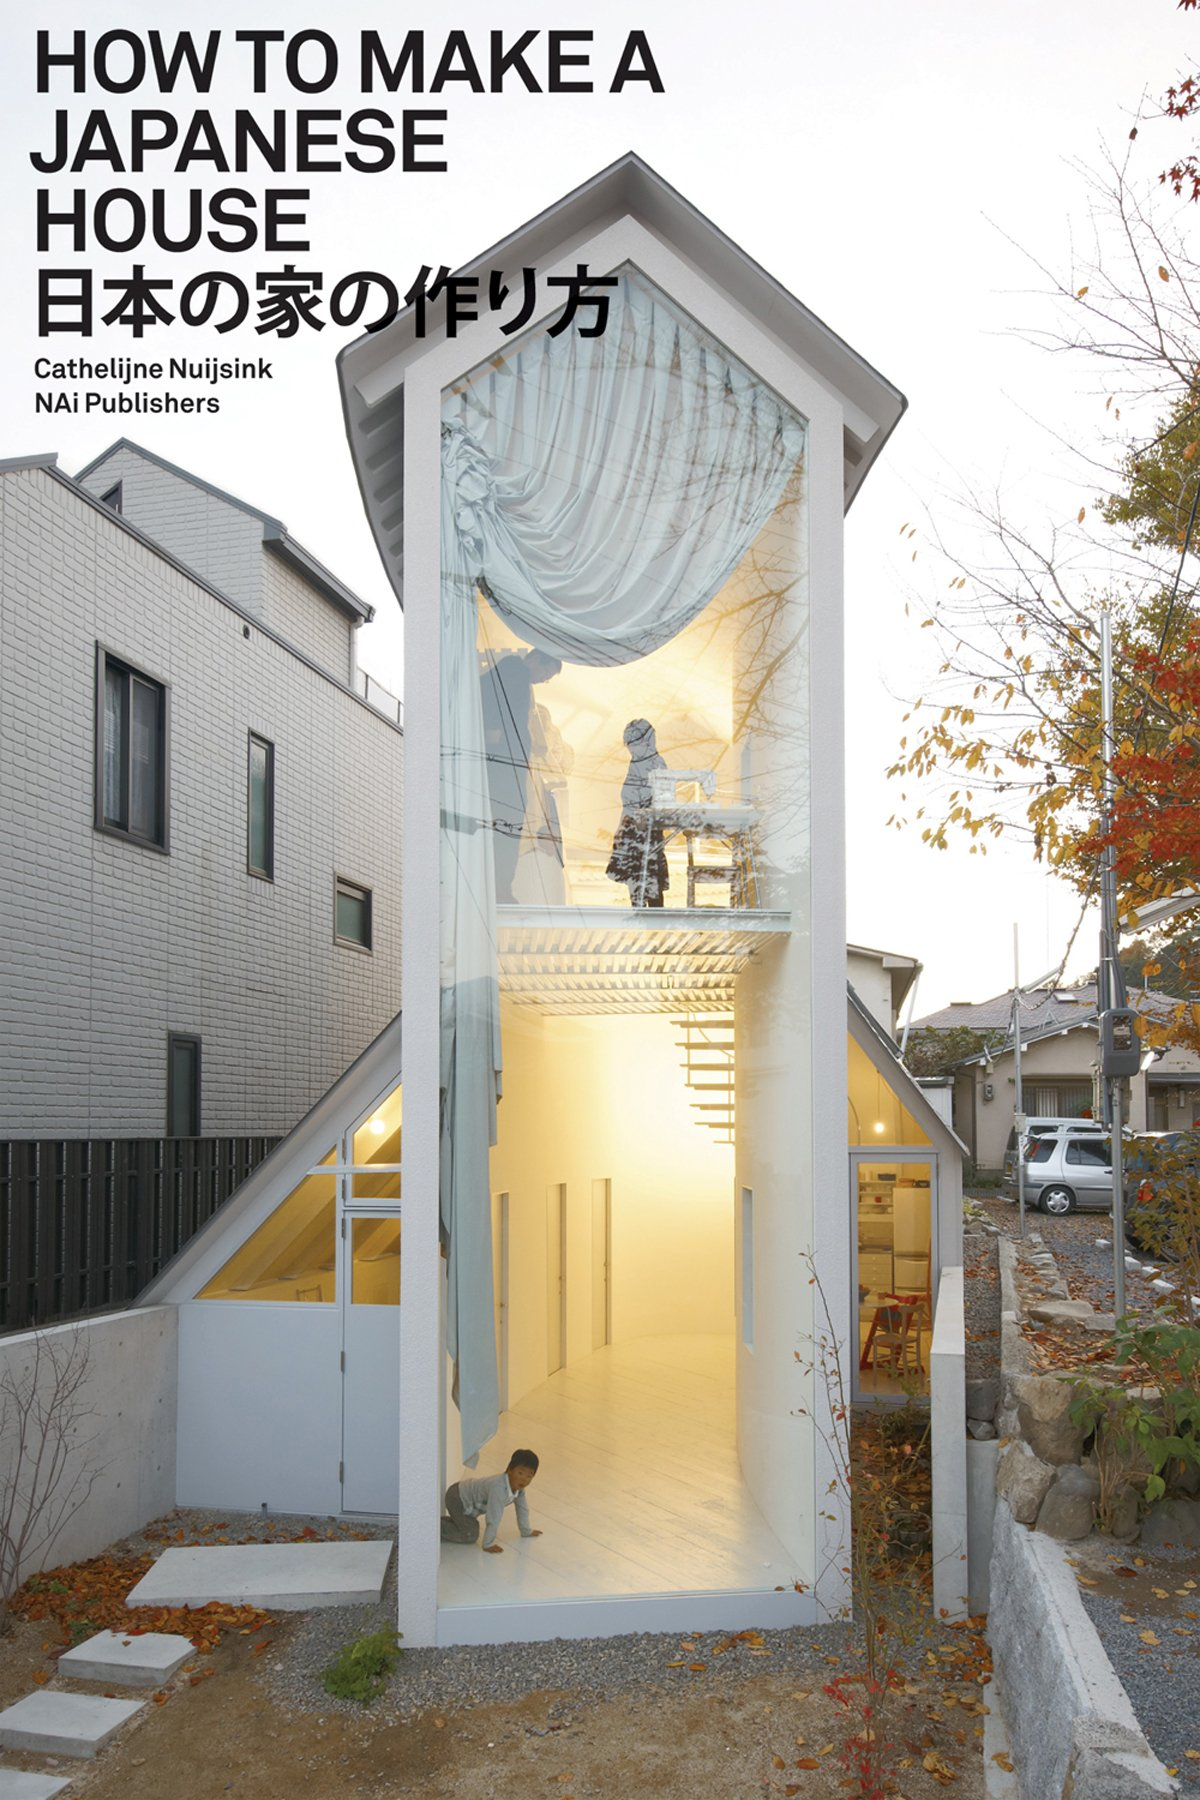 High Quality How To Make A Japanese House: Cathelijne Nuijsink: 9789056628505:  Amazon.com: Books